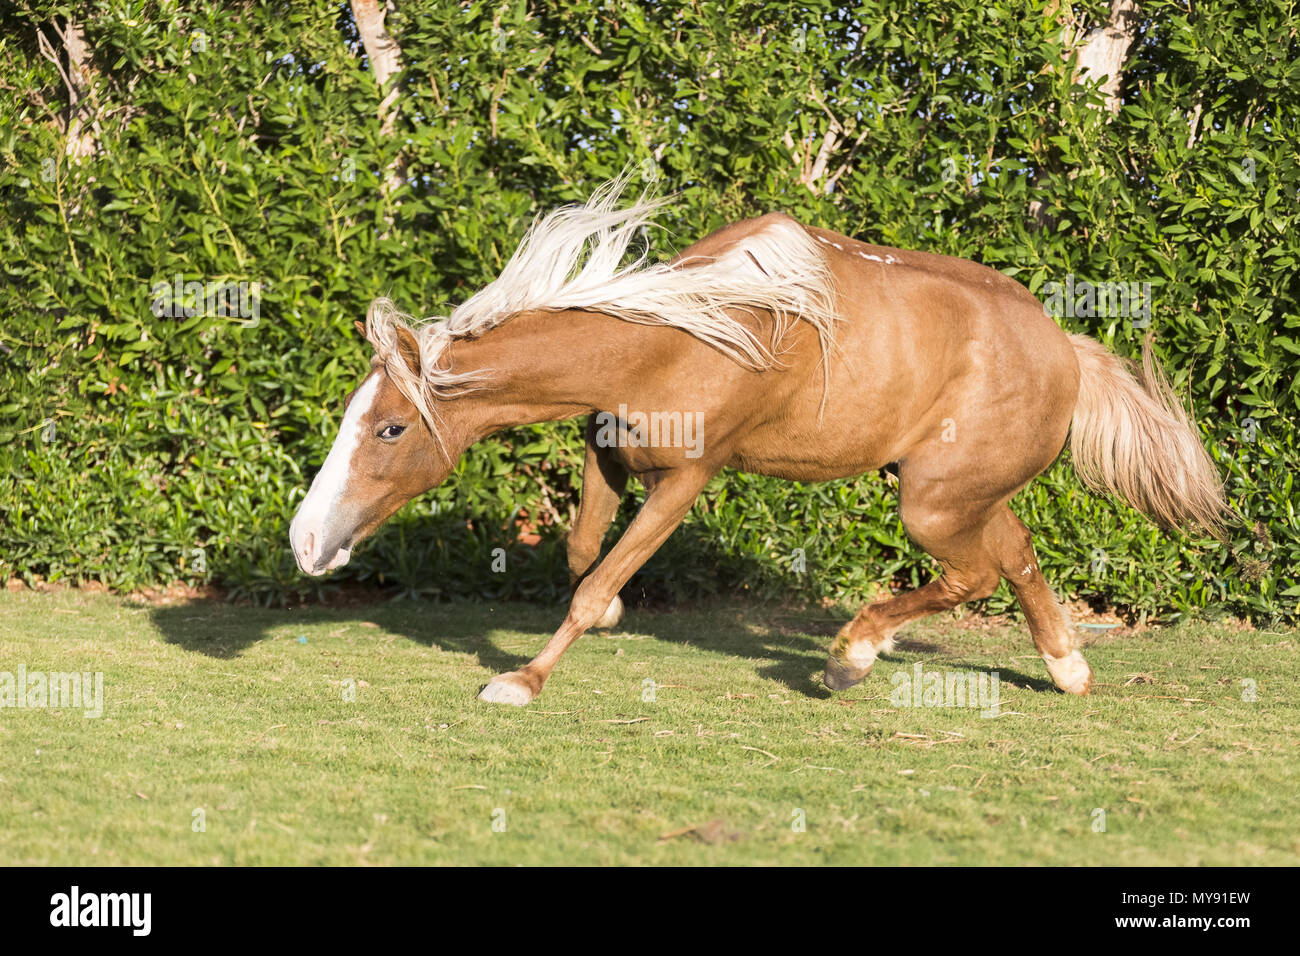 Welsh Pony. Chestnut mare slipping on a lawn. Egypt - Stock Image